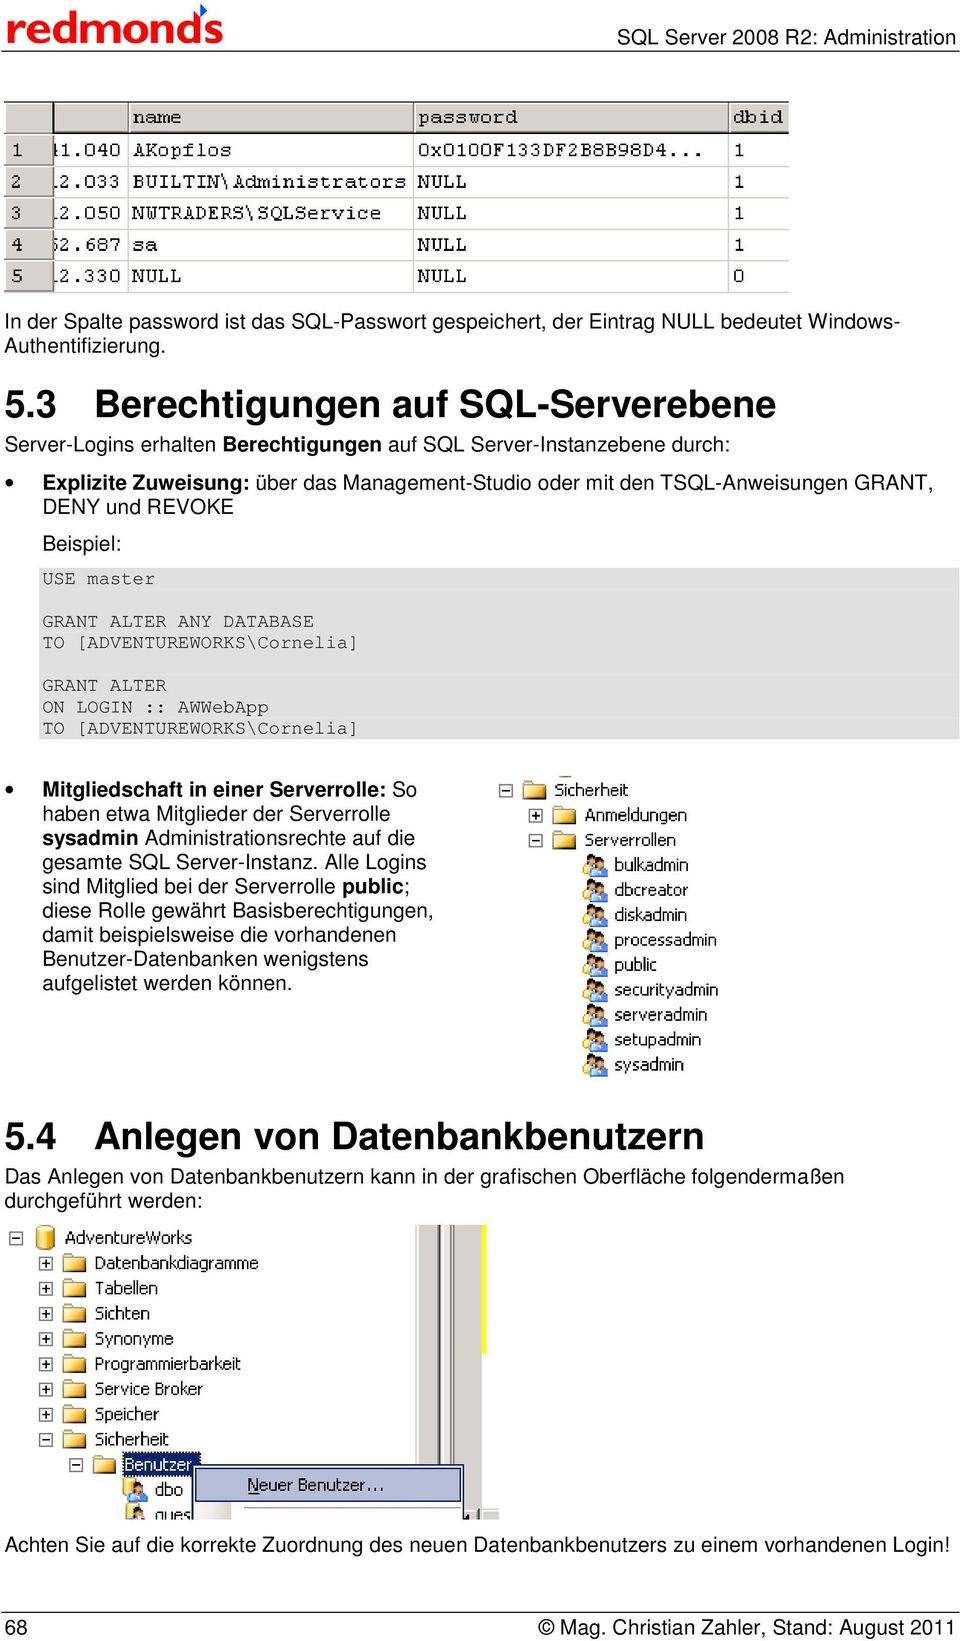 und REVOKE Beispiel: USE master GRANT ALTER ANY DATABASE TO [ADVENTUREWORKS\Cornelia] GRANT ALTER ON LOGIN :: AWWebApp TO [ADVENTUREWORKS\Cornelia] Mitgliedschaft in einer Serverrolle: So haben etwa